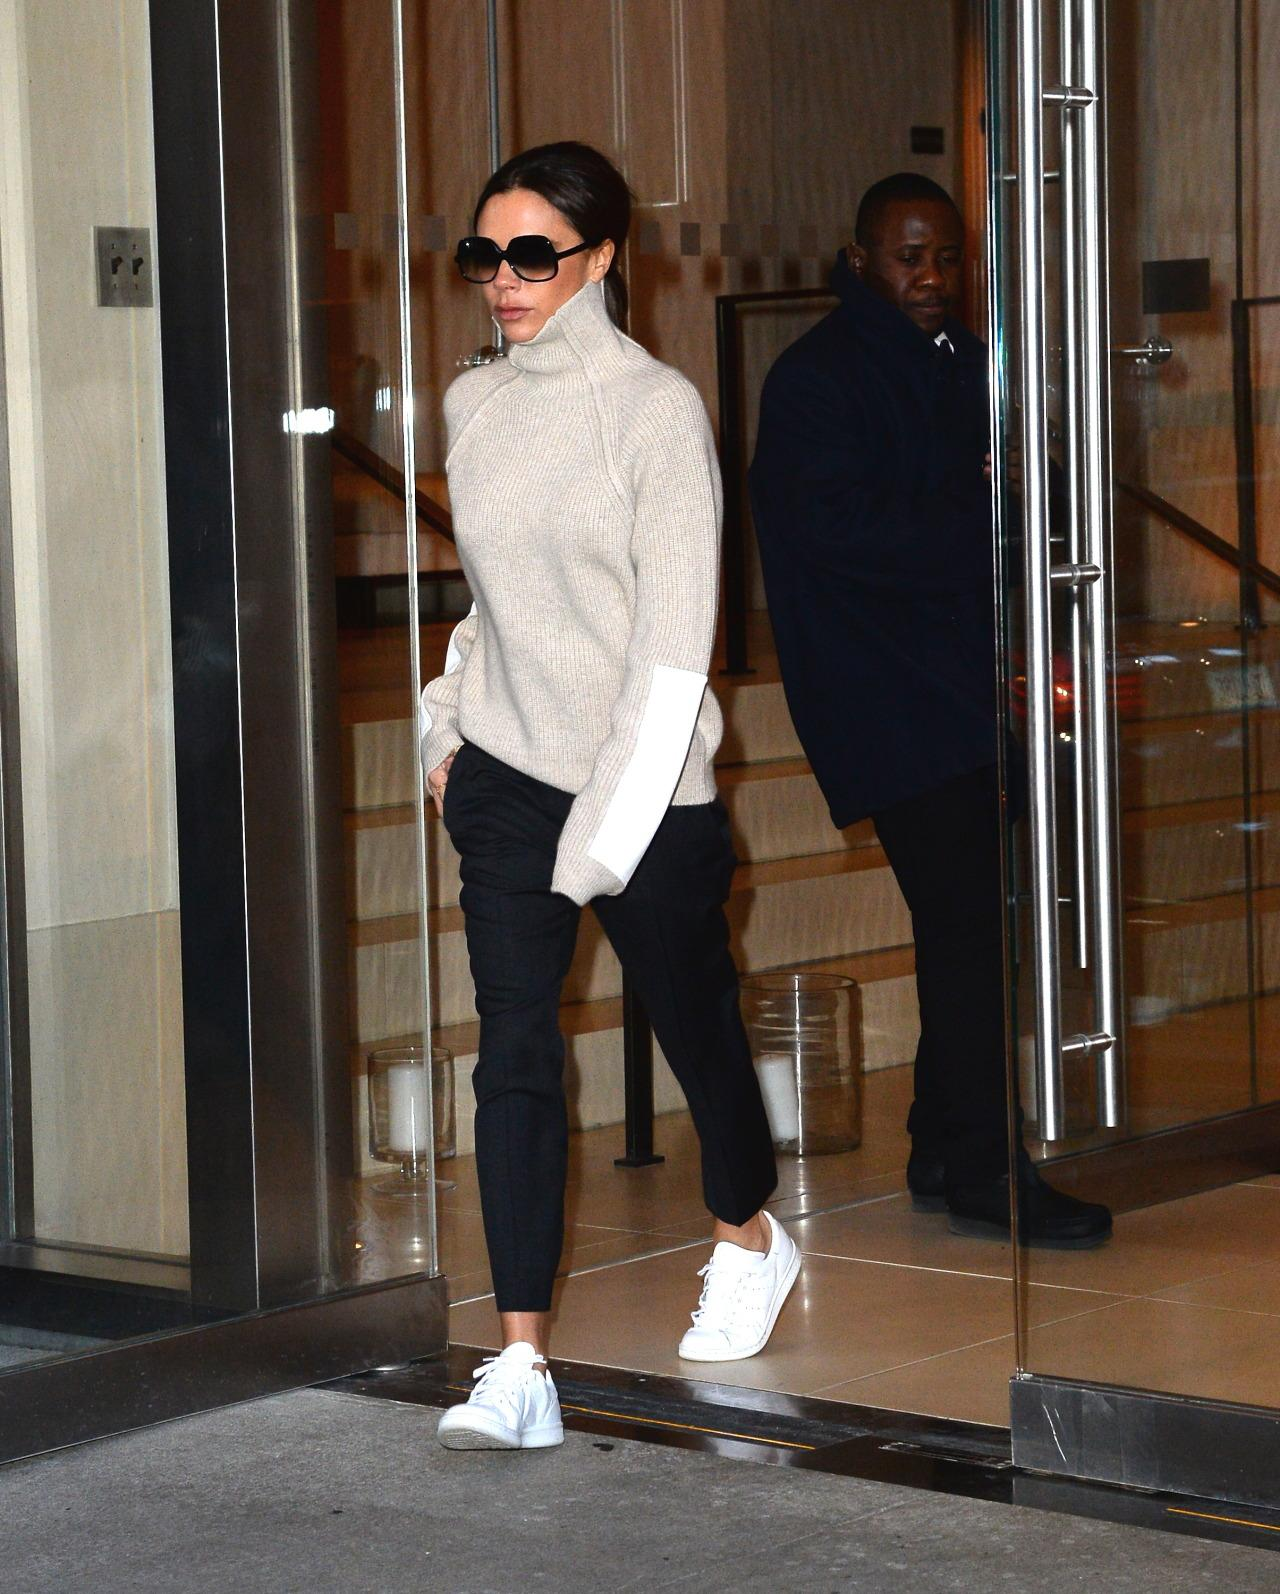 Victoria Beckham Exposes Her Ankles in NYC's Single-Digit Temperatures